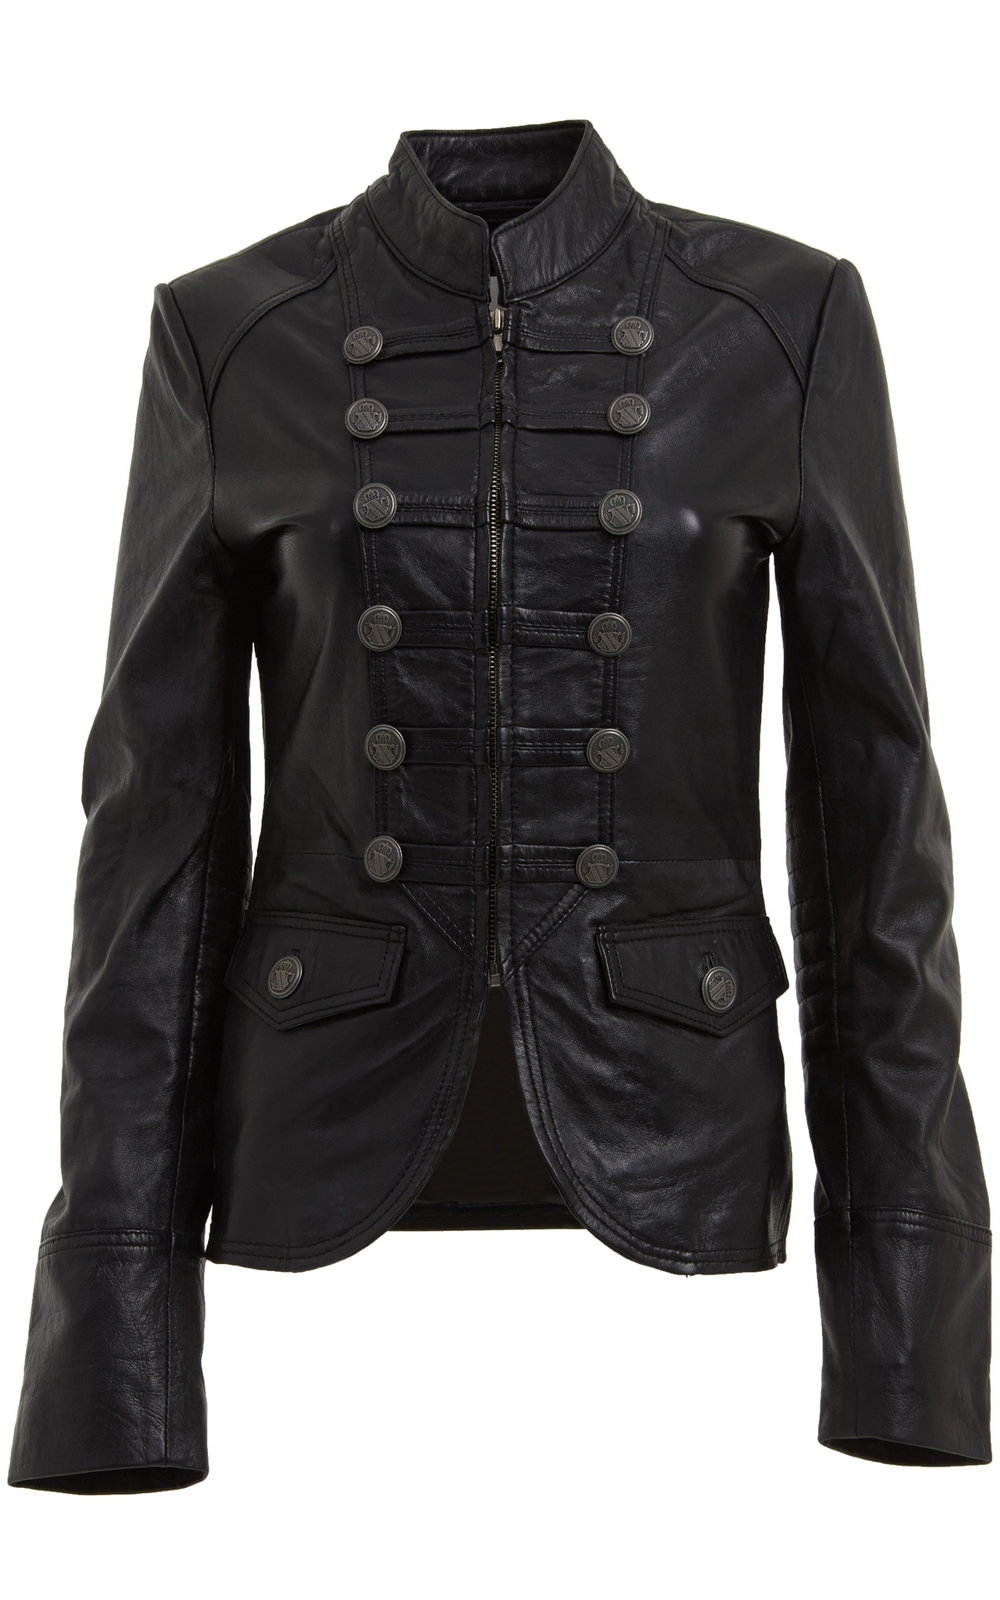 WOMENS BLACK MILITARY STYLE LEATHER BLAZER JACKET on Luulla